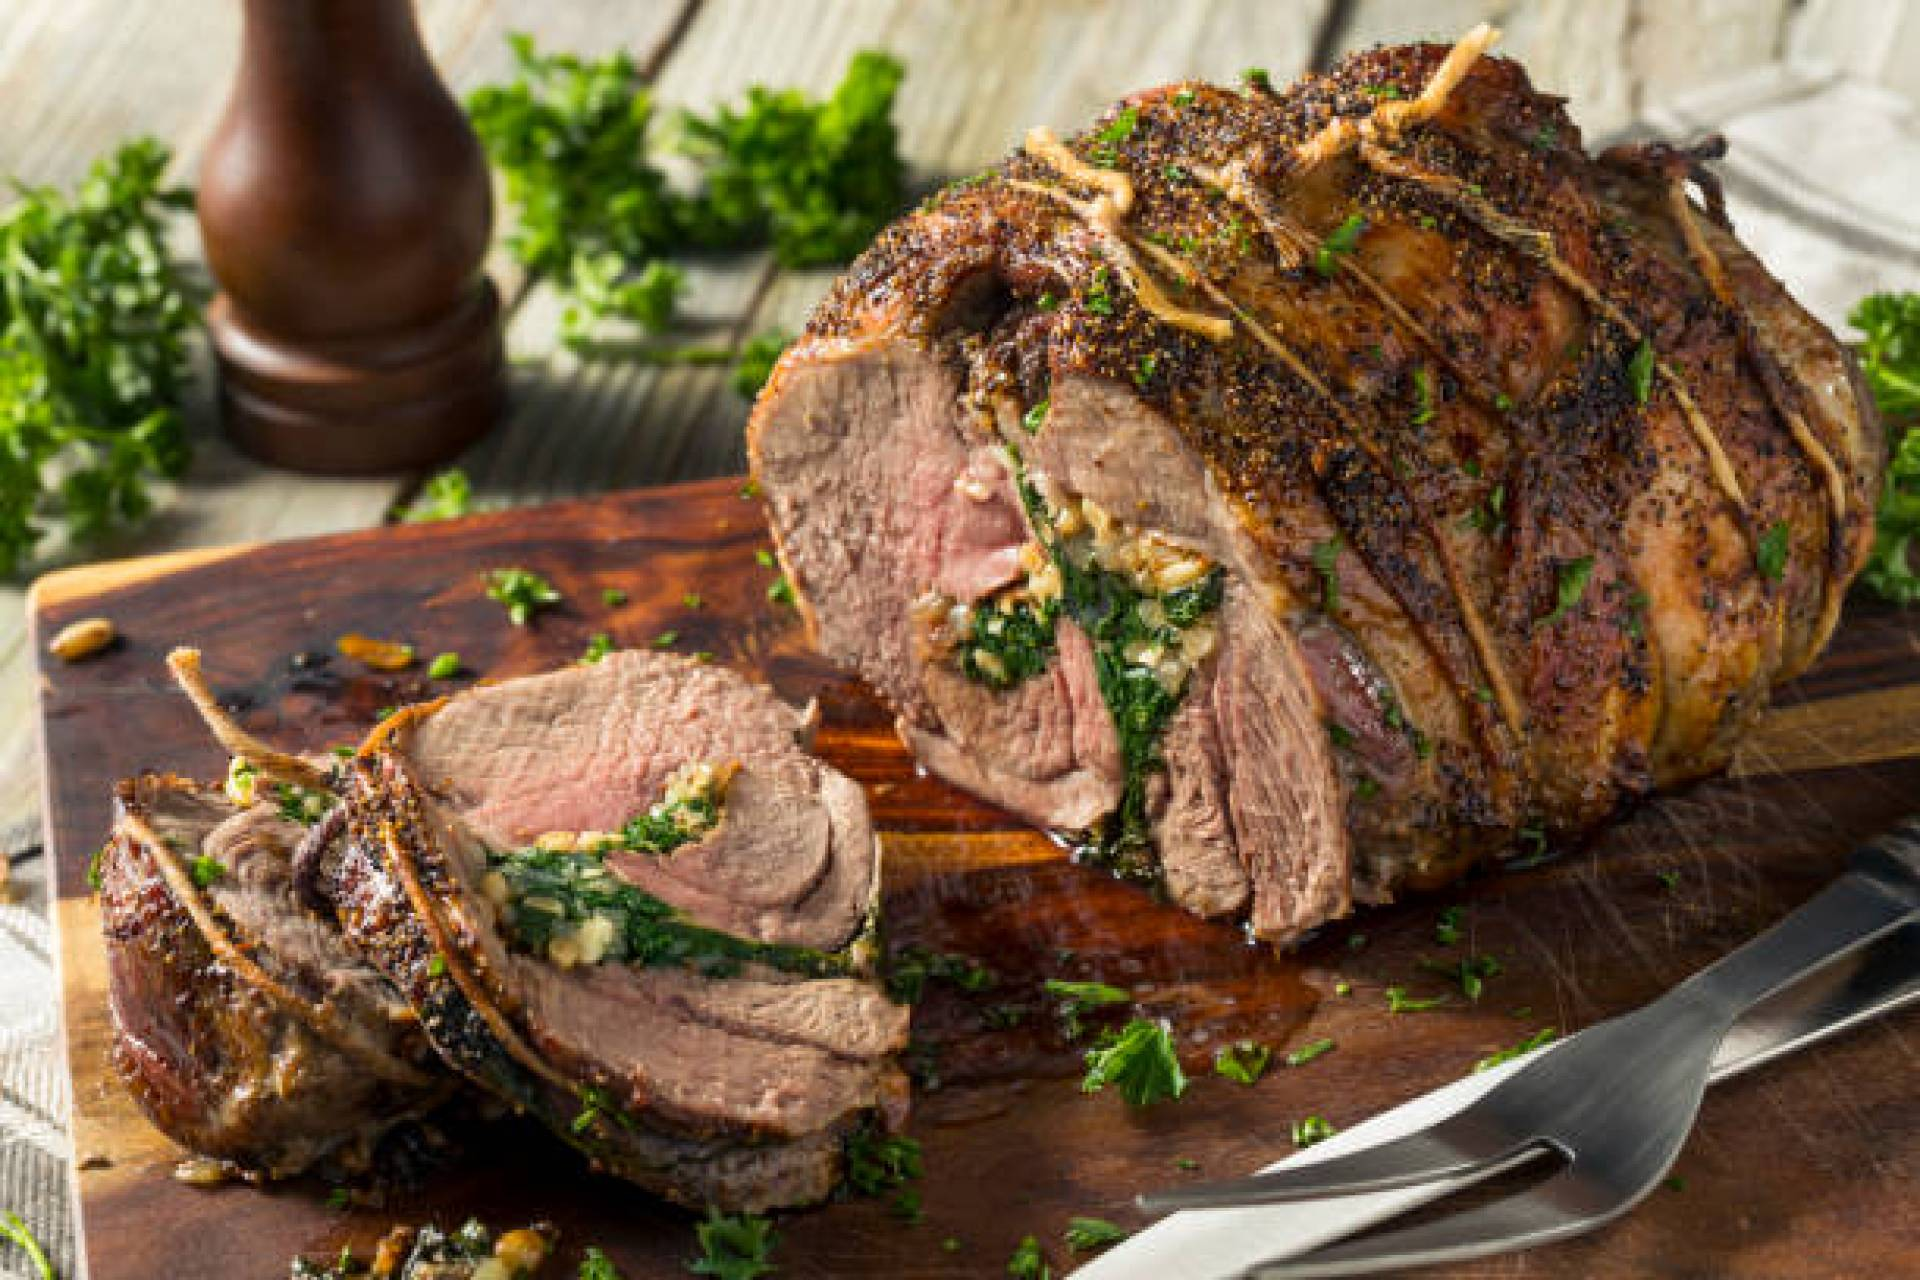 Easter Protein - Roast Herb Lamb - One Pound